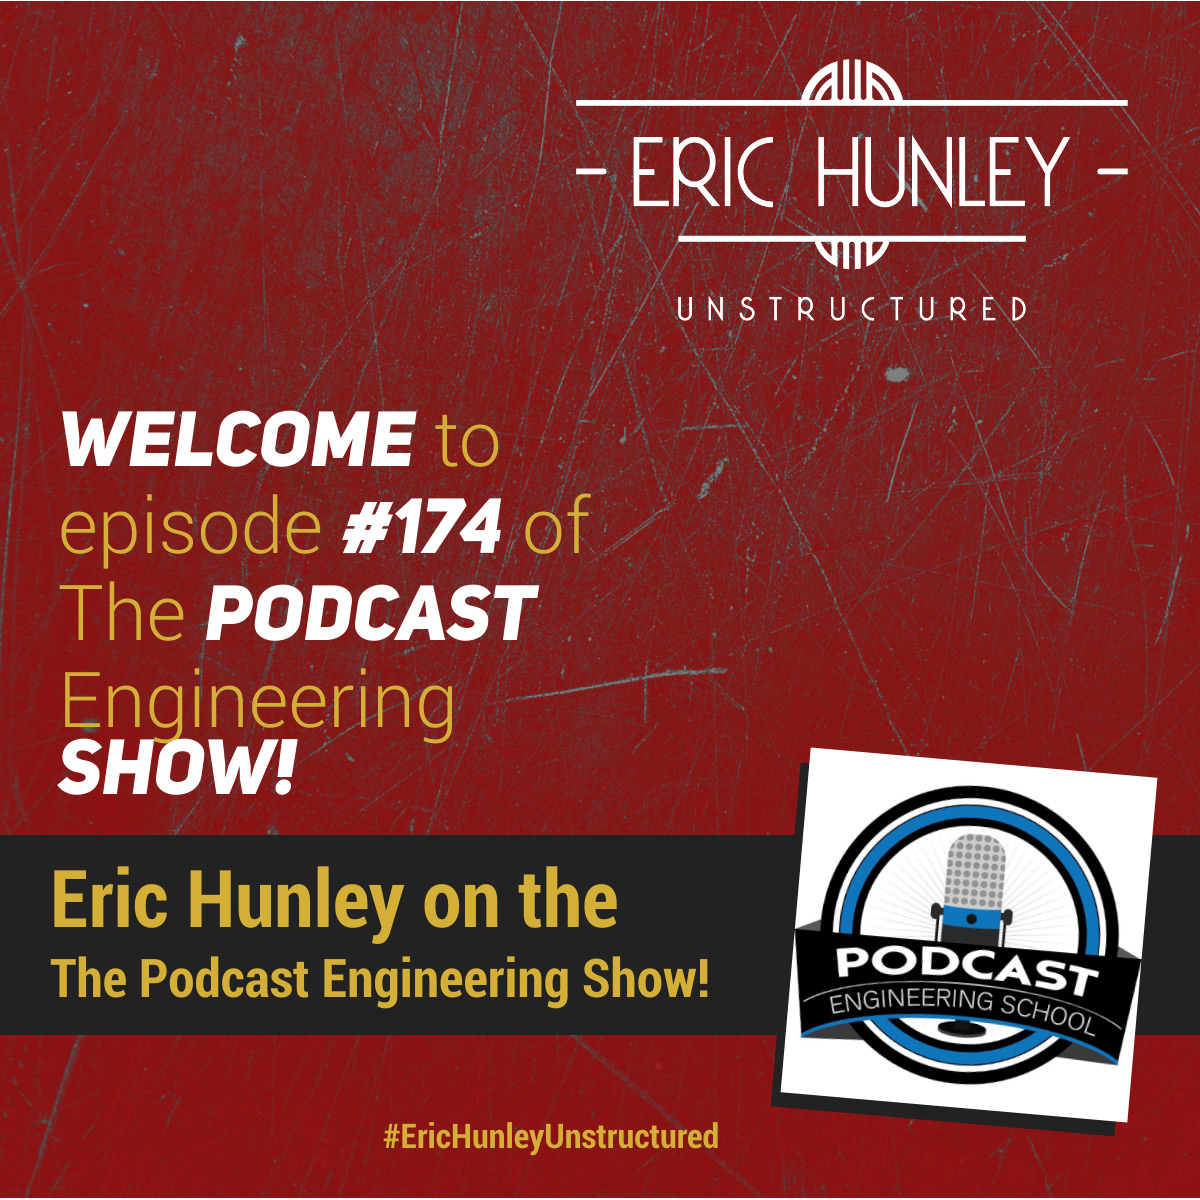 Eric Hunley Podcast Appearance Interviews - The Podcast Engineering Show! Square Post